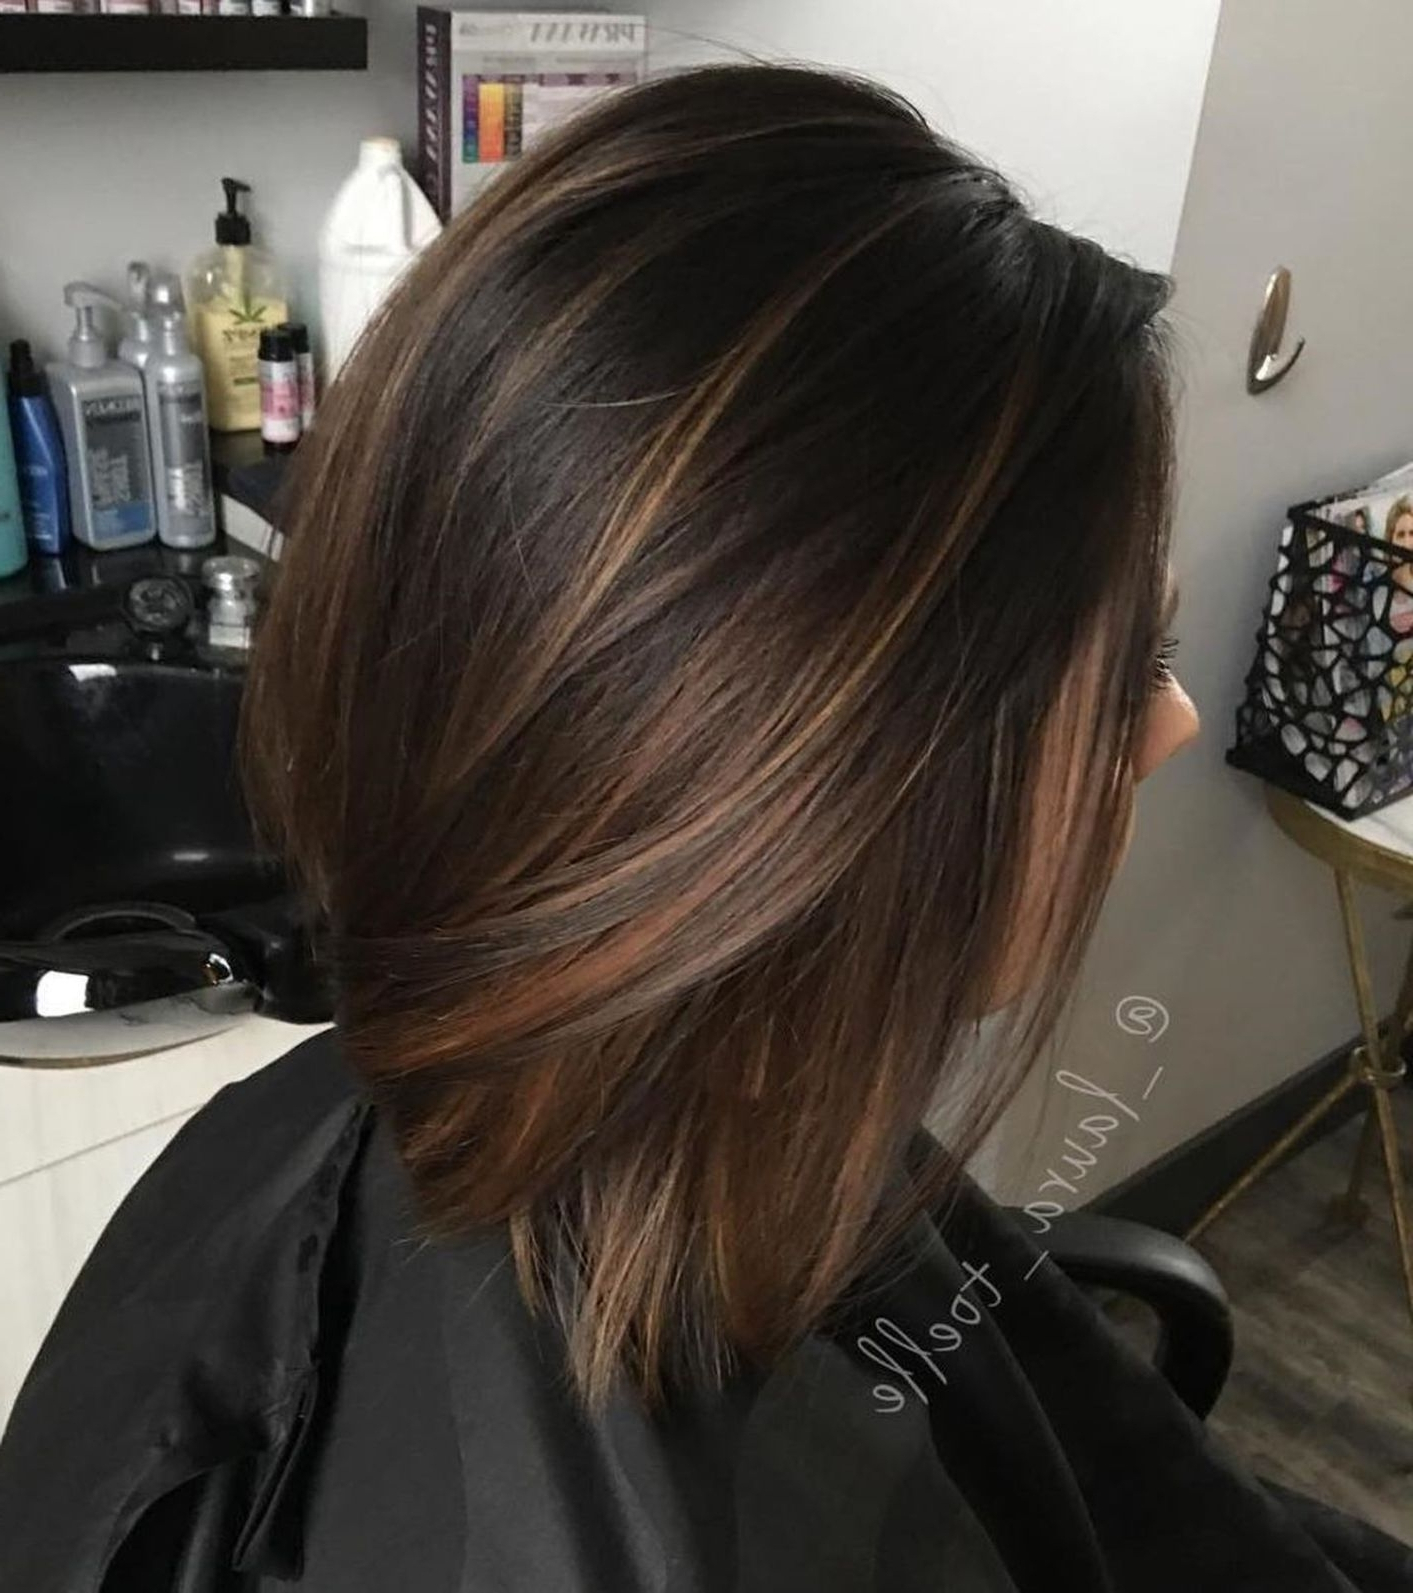 Uneek Highlights On A Bob Haircut For Brown Skin – Wavy Inside Black Hairstyles With Brown Highlights (View 5 of 20)